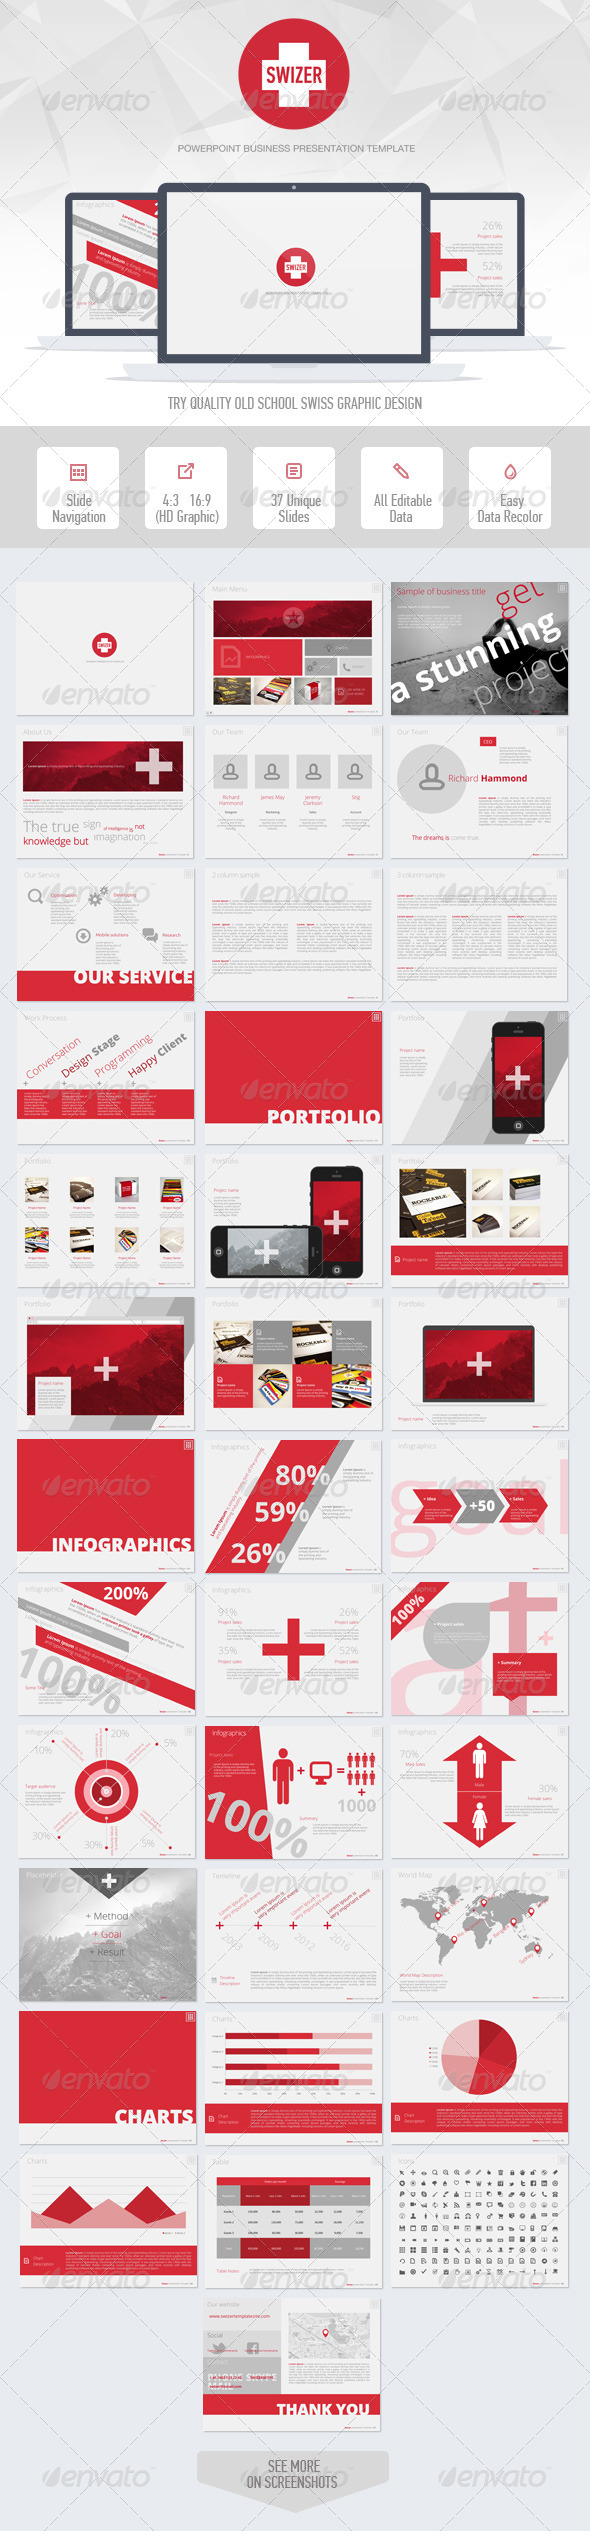 GraphicRiver Swizer Powerpoint Presentation Template 6580651